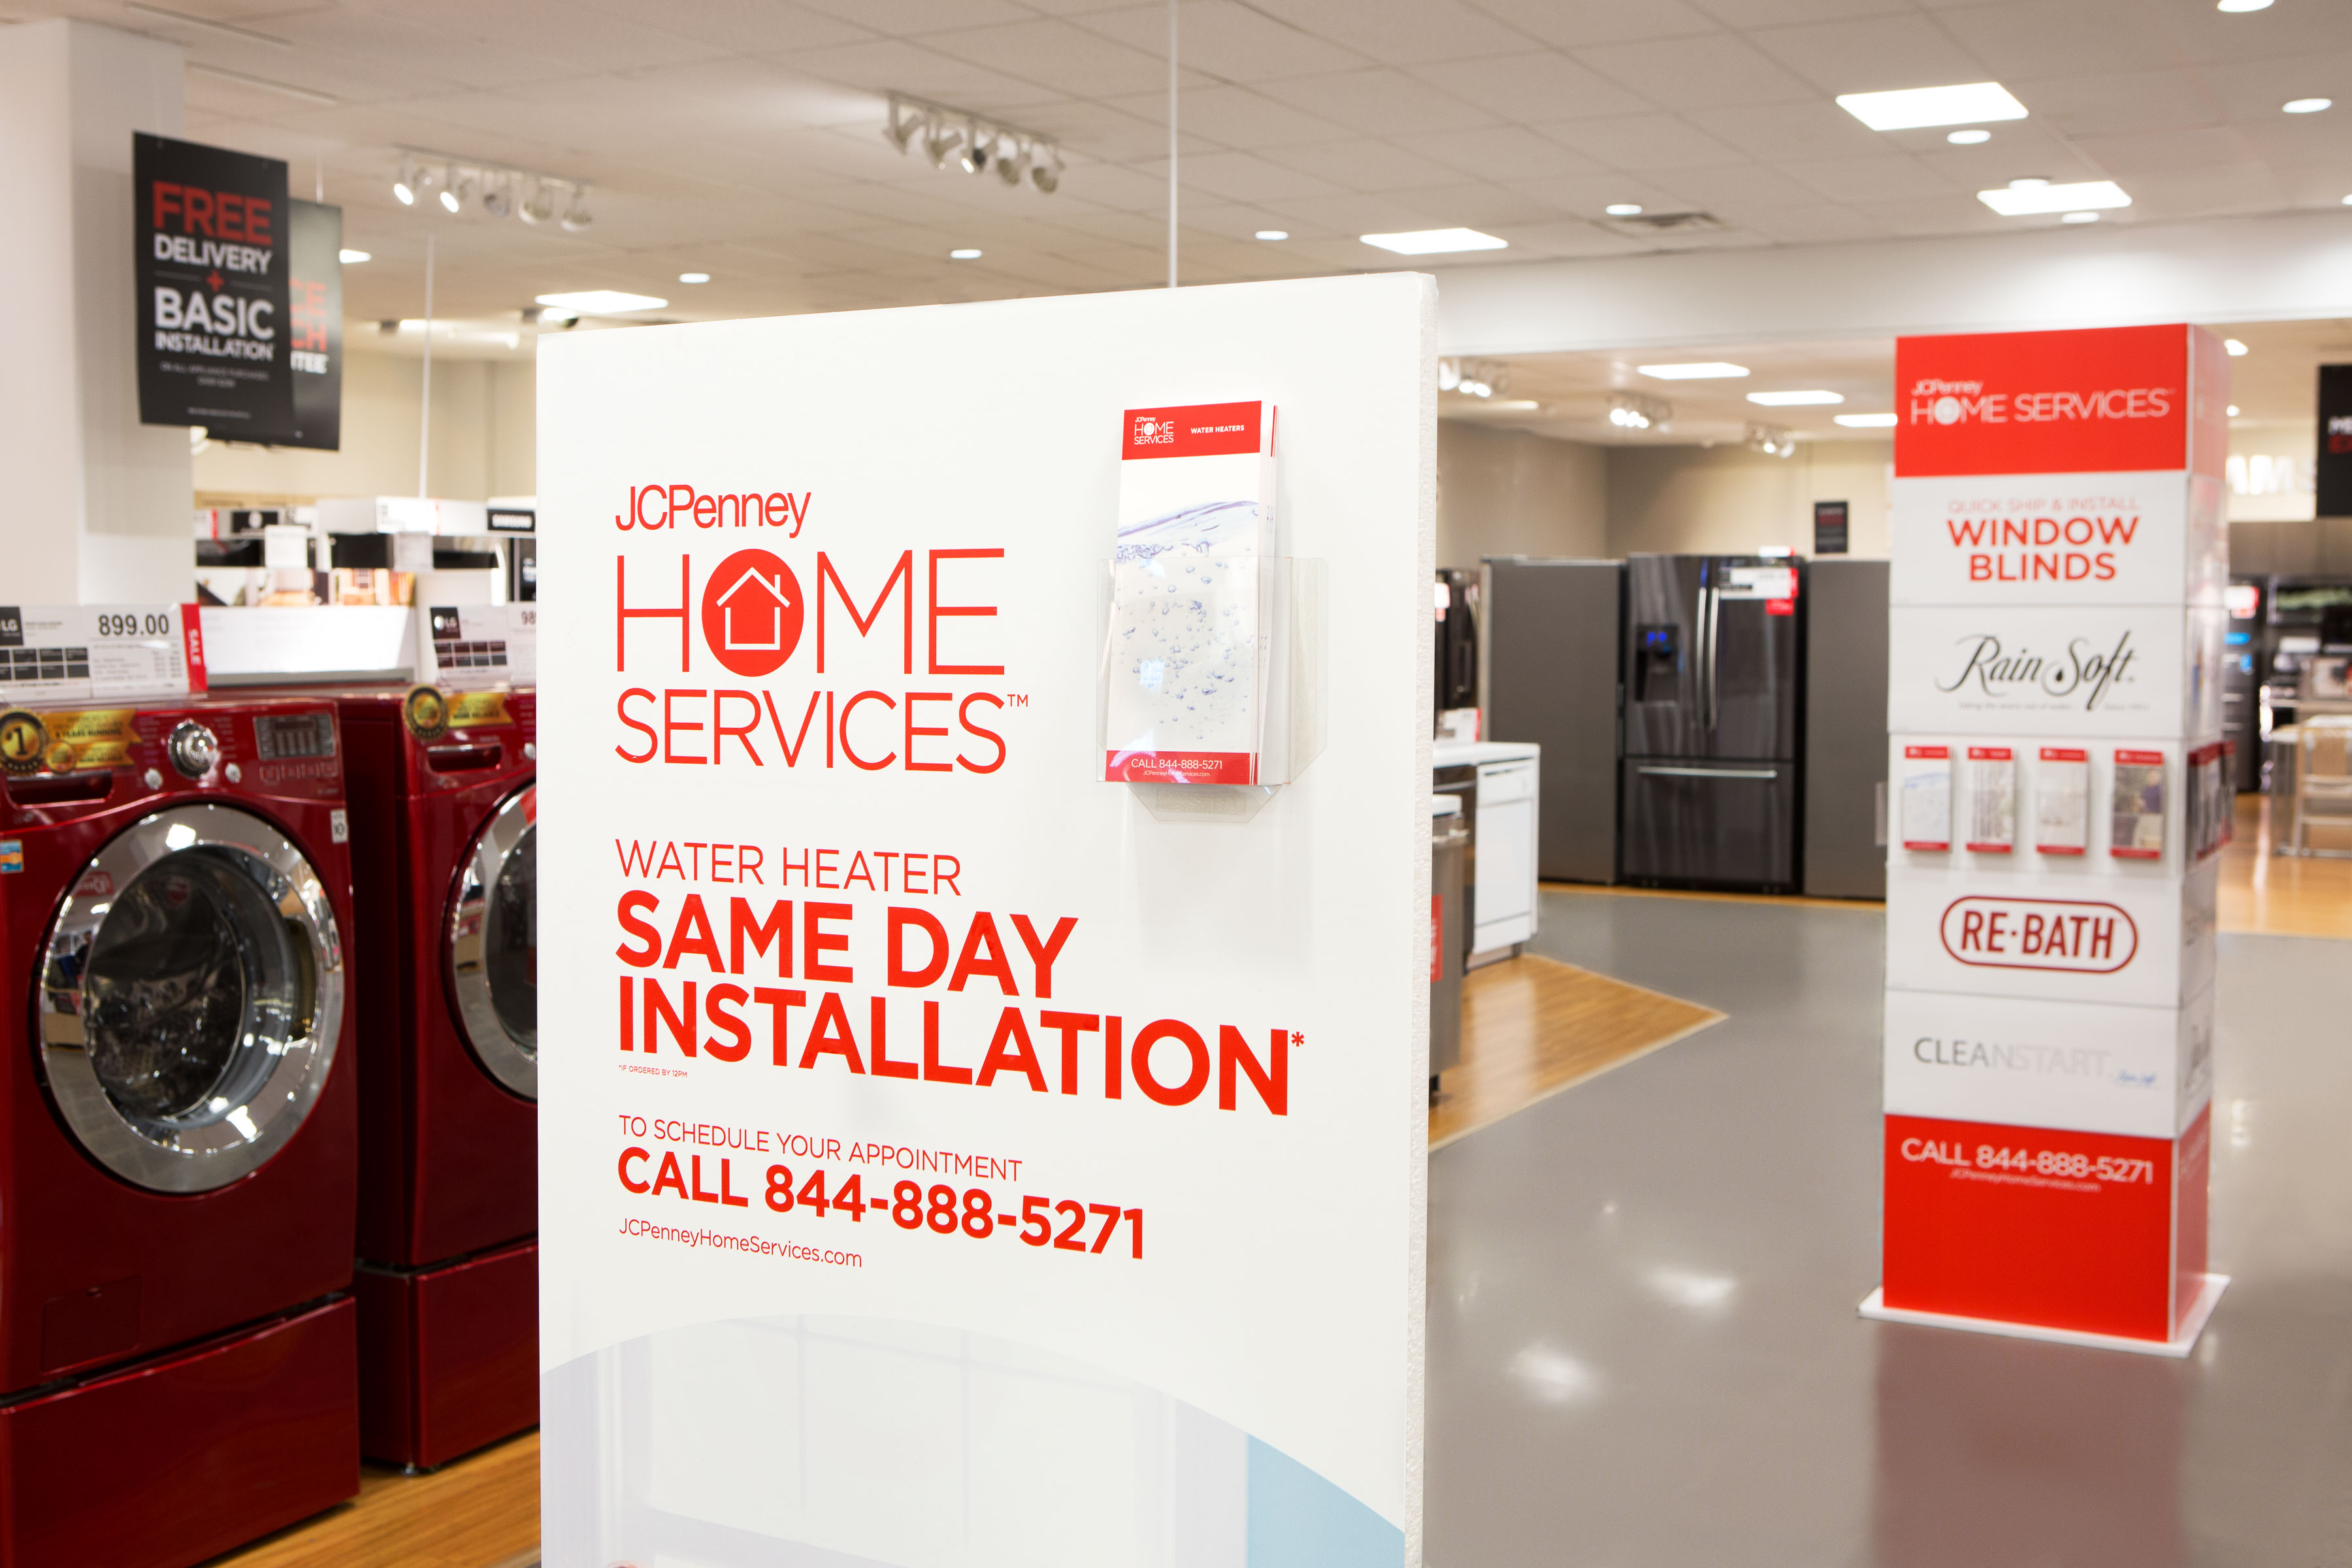 J.C. Penney is banking on home services to help it revive flagging sales.